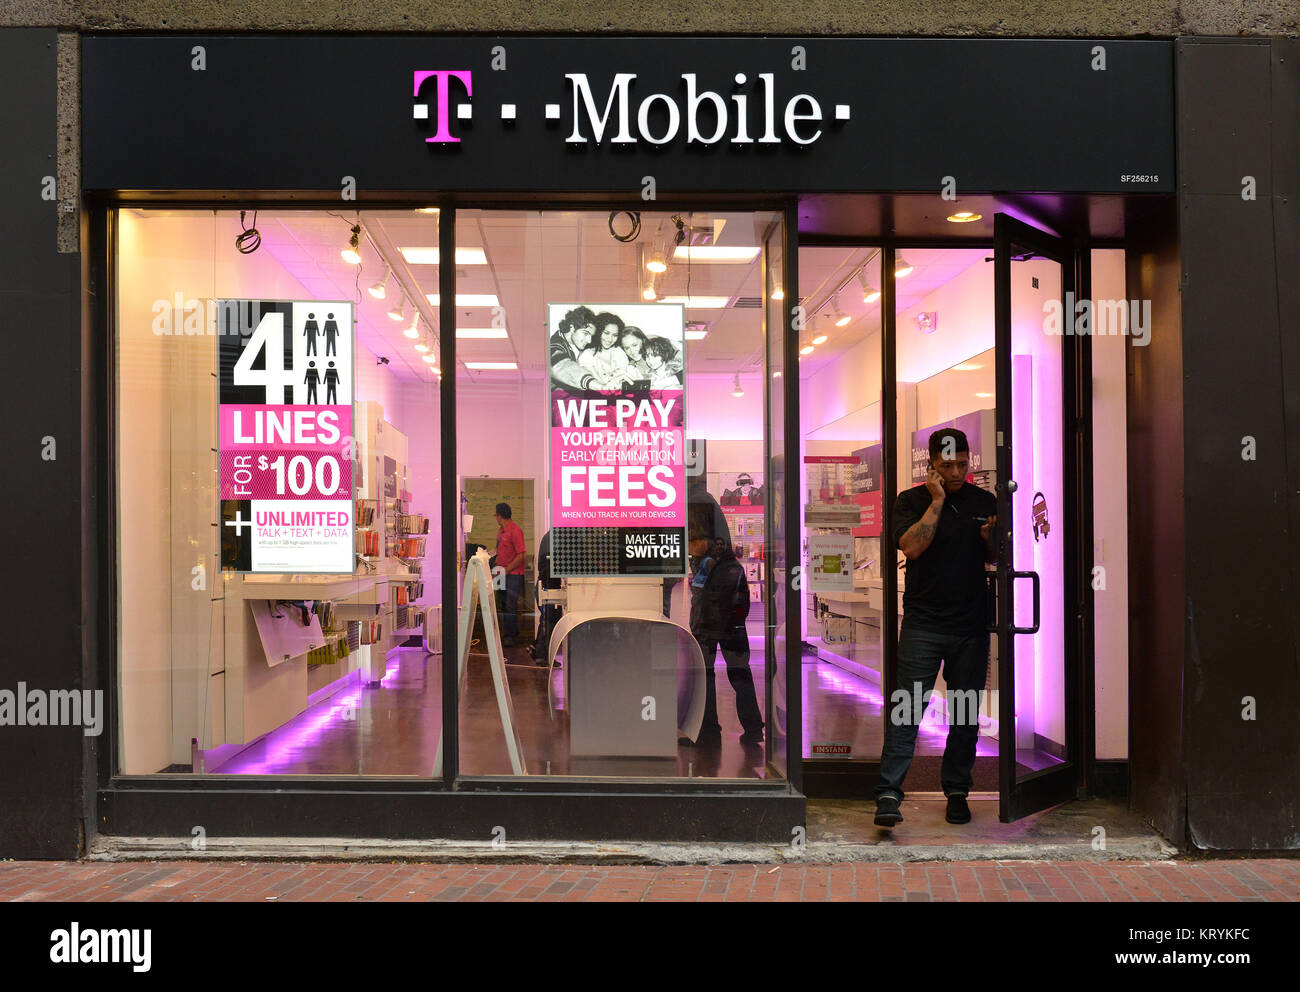 T Mobile Shop Berlin Geschaeft Laden Shop Stock Photos Geschaeft Laden Shop Stock